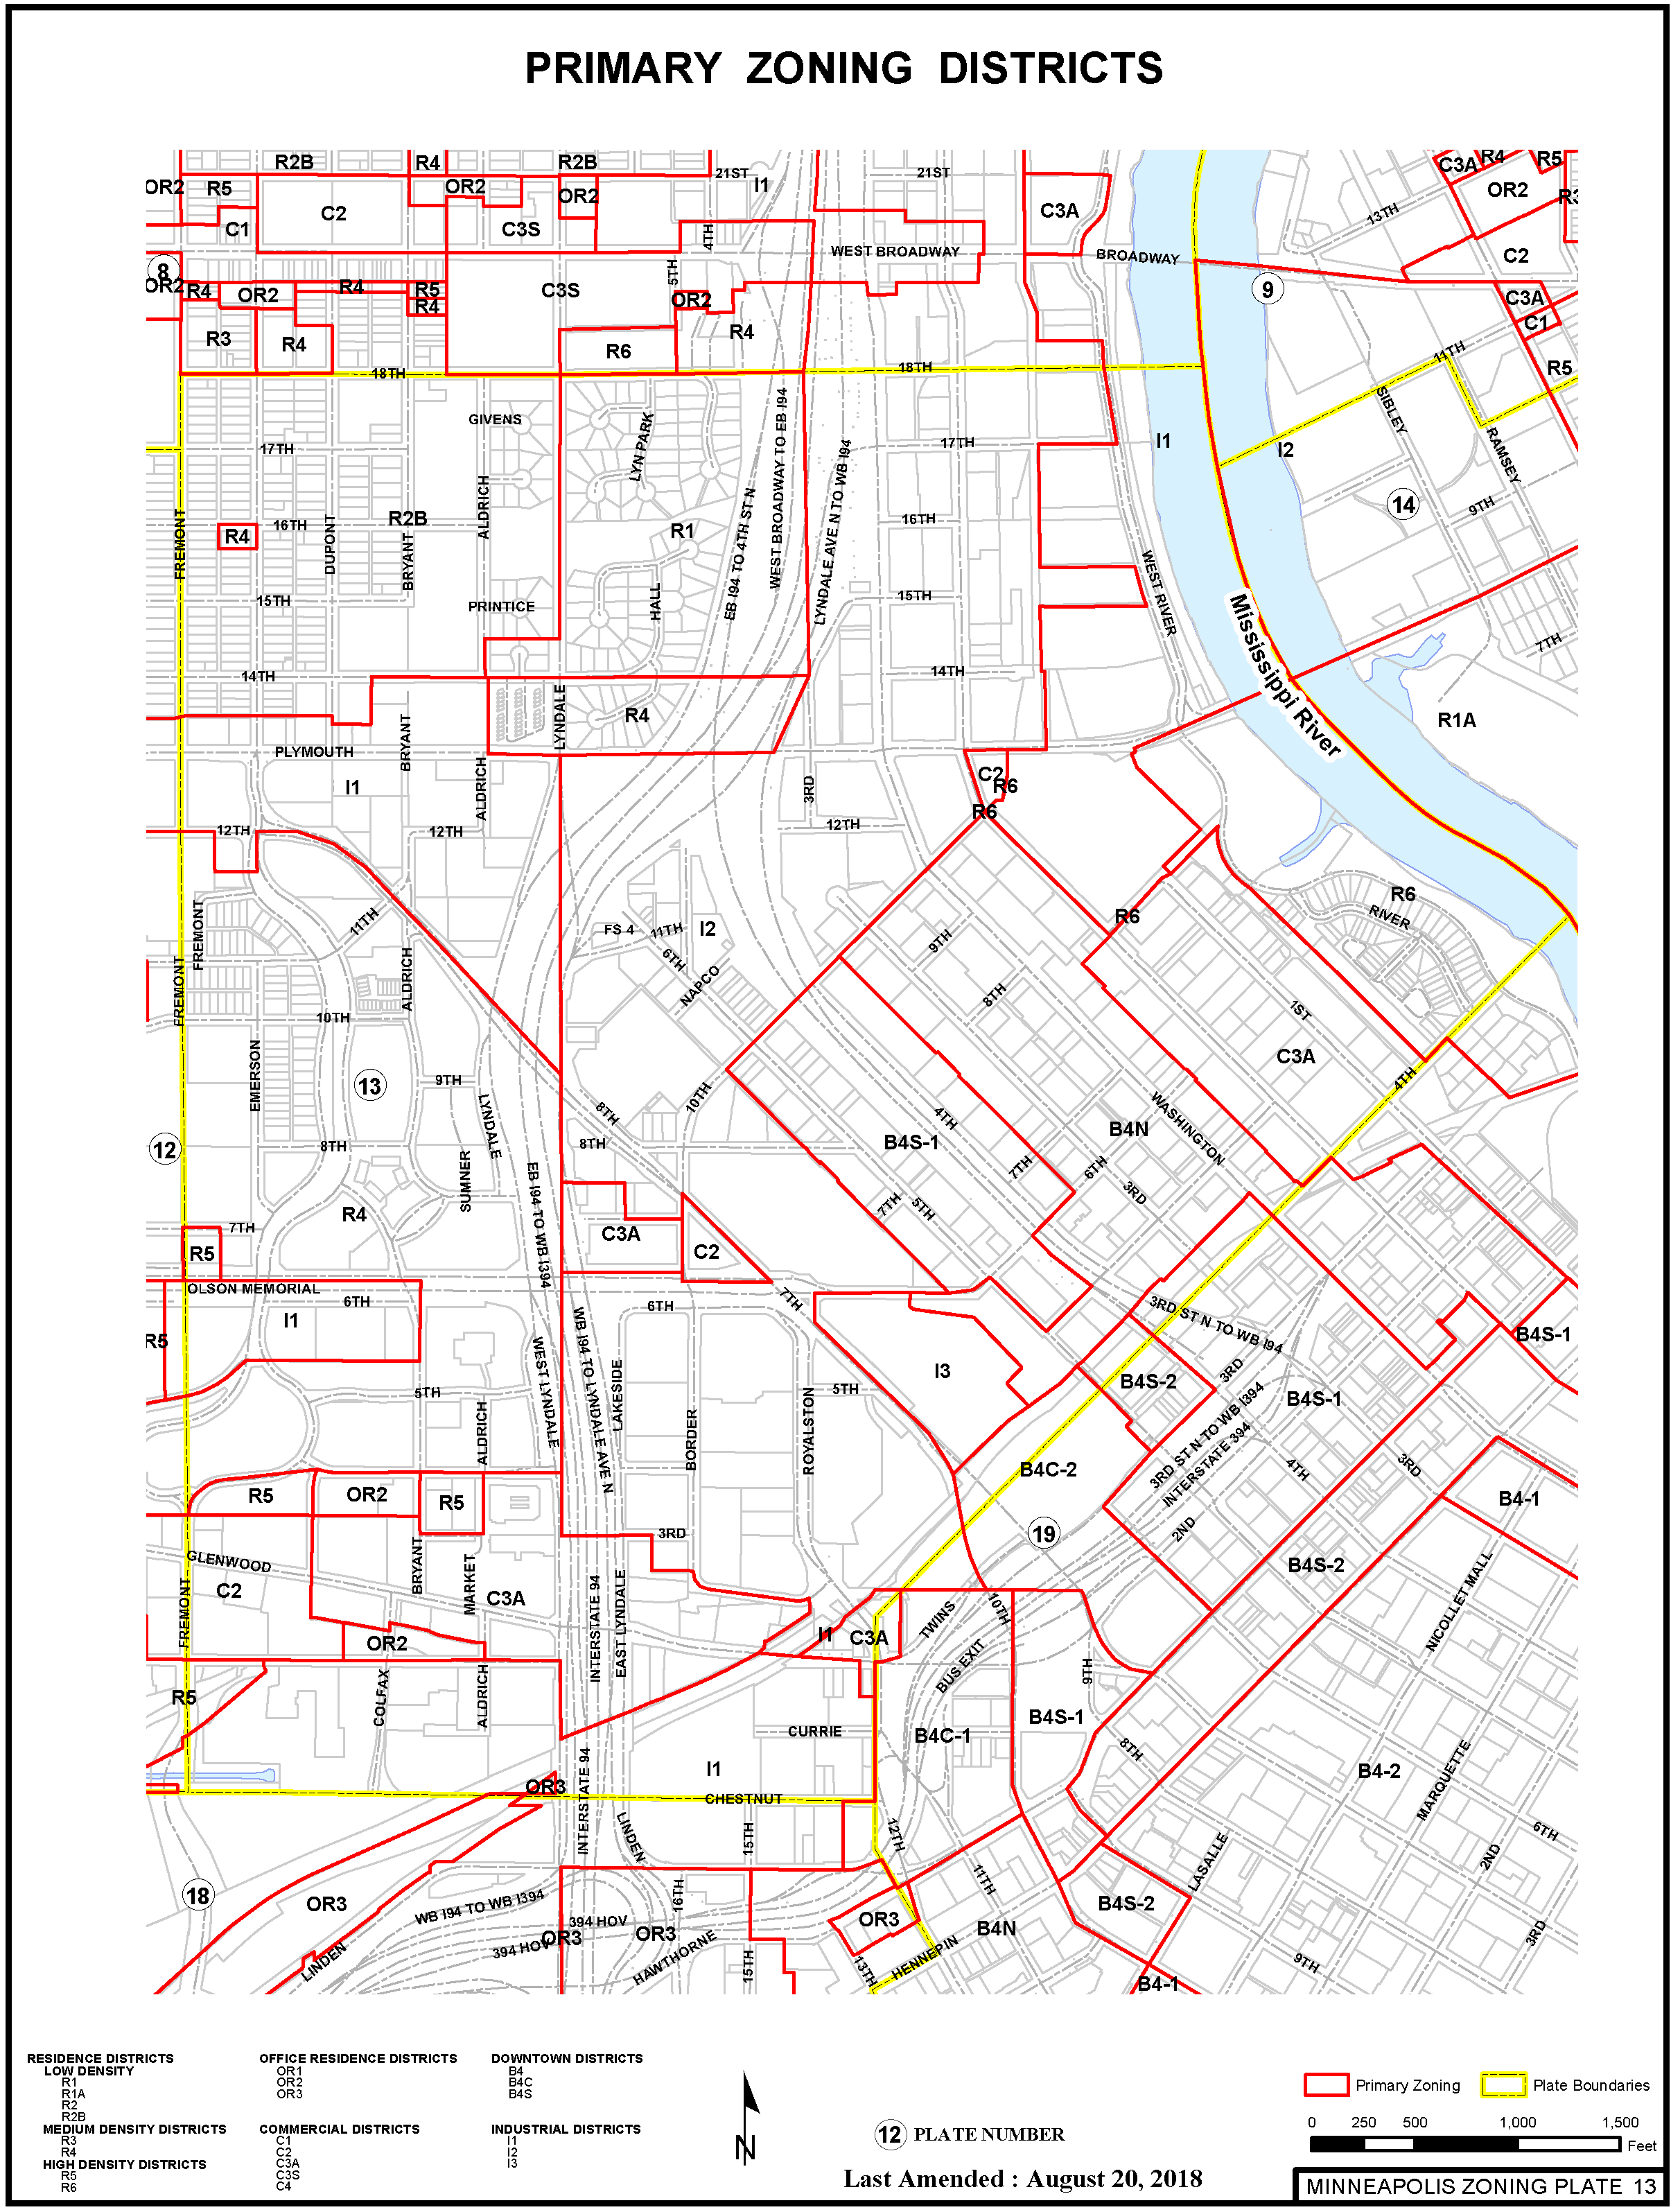 CHAPTER 521. - ZONING DISTRICTS AND MAPS GENERALLY | Code of ... on city of los angeles map, city of boise airport map, city of gold coast map, city of elgin map,